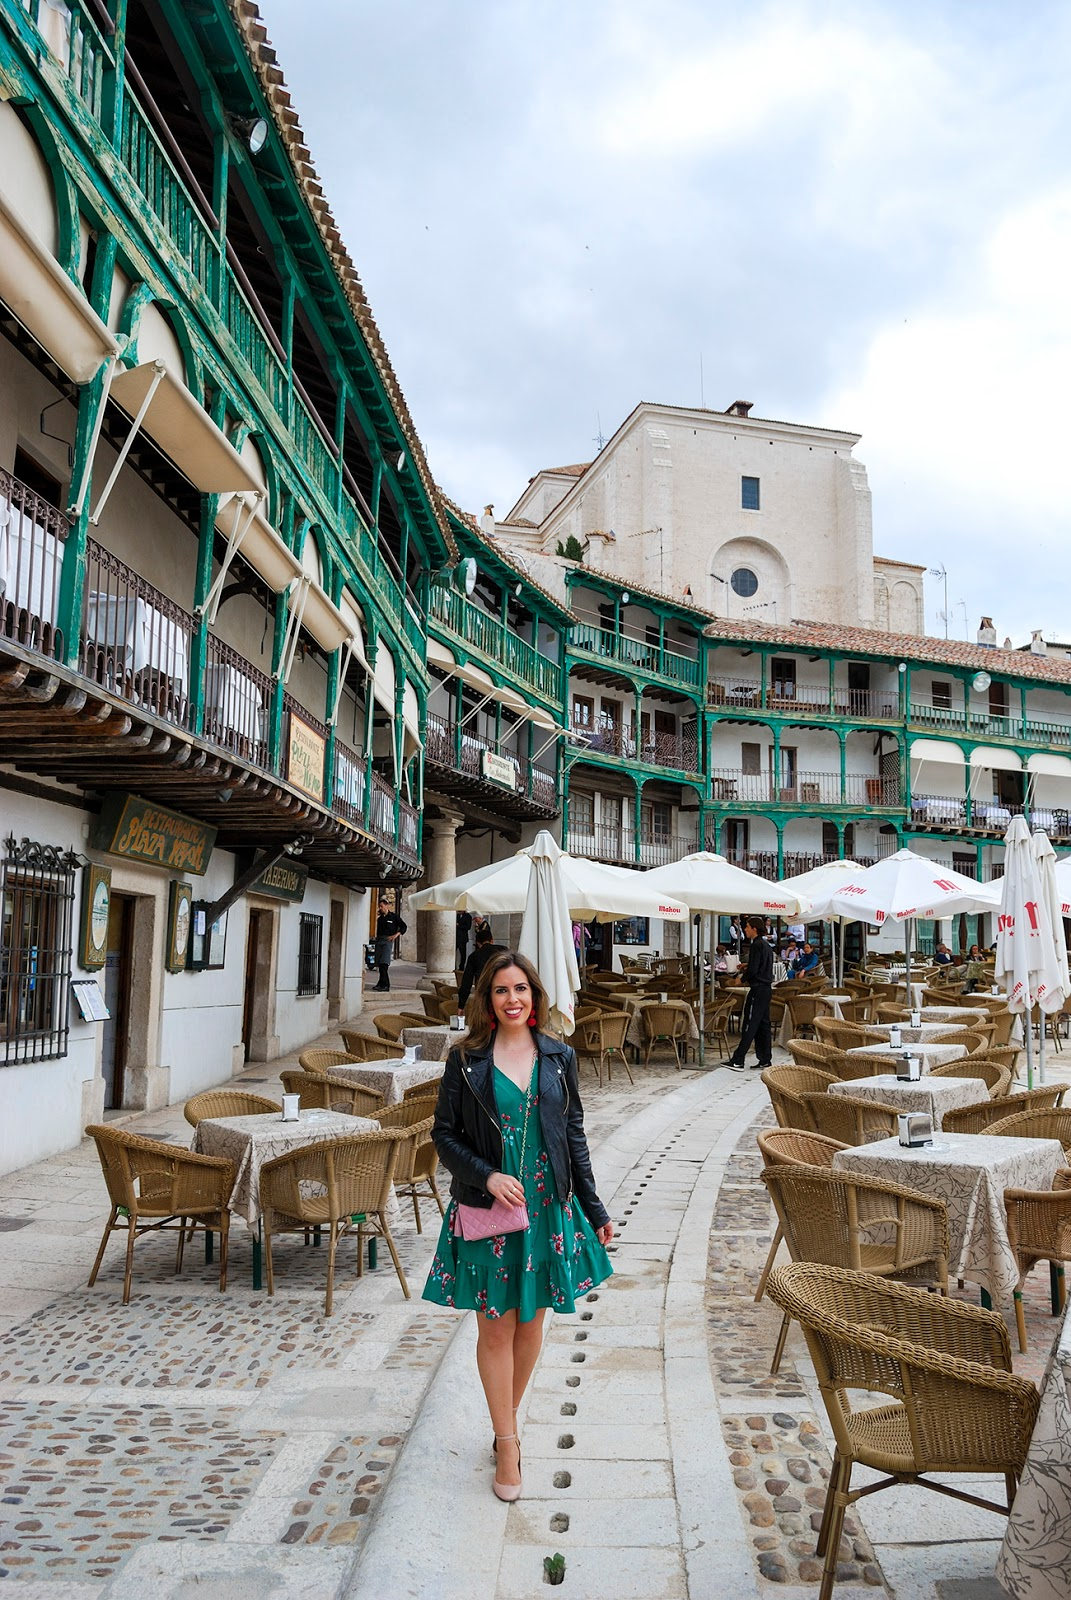 Best Day Trips From Madrid: Chinchon